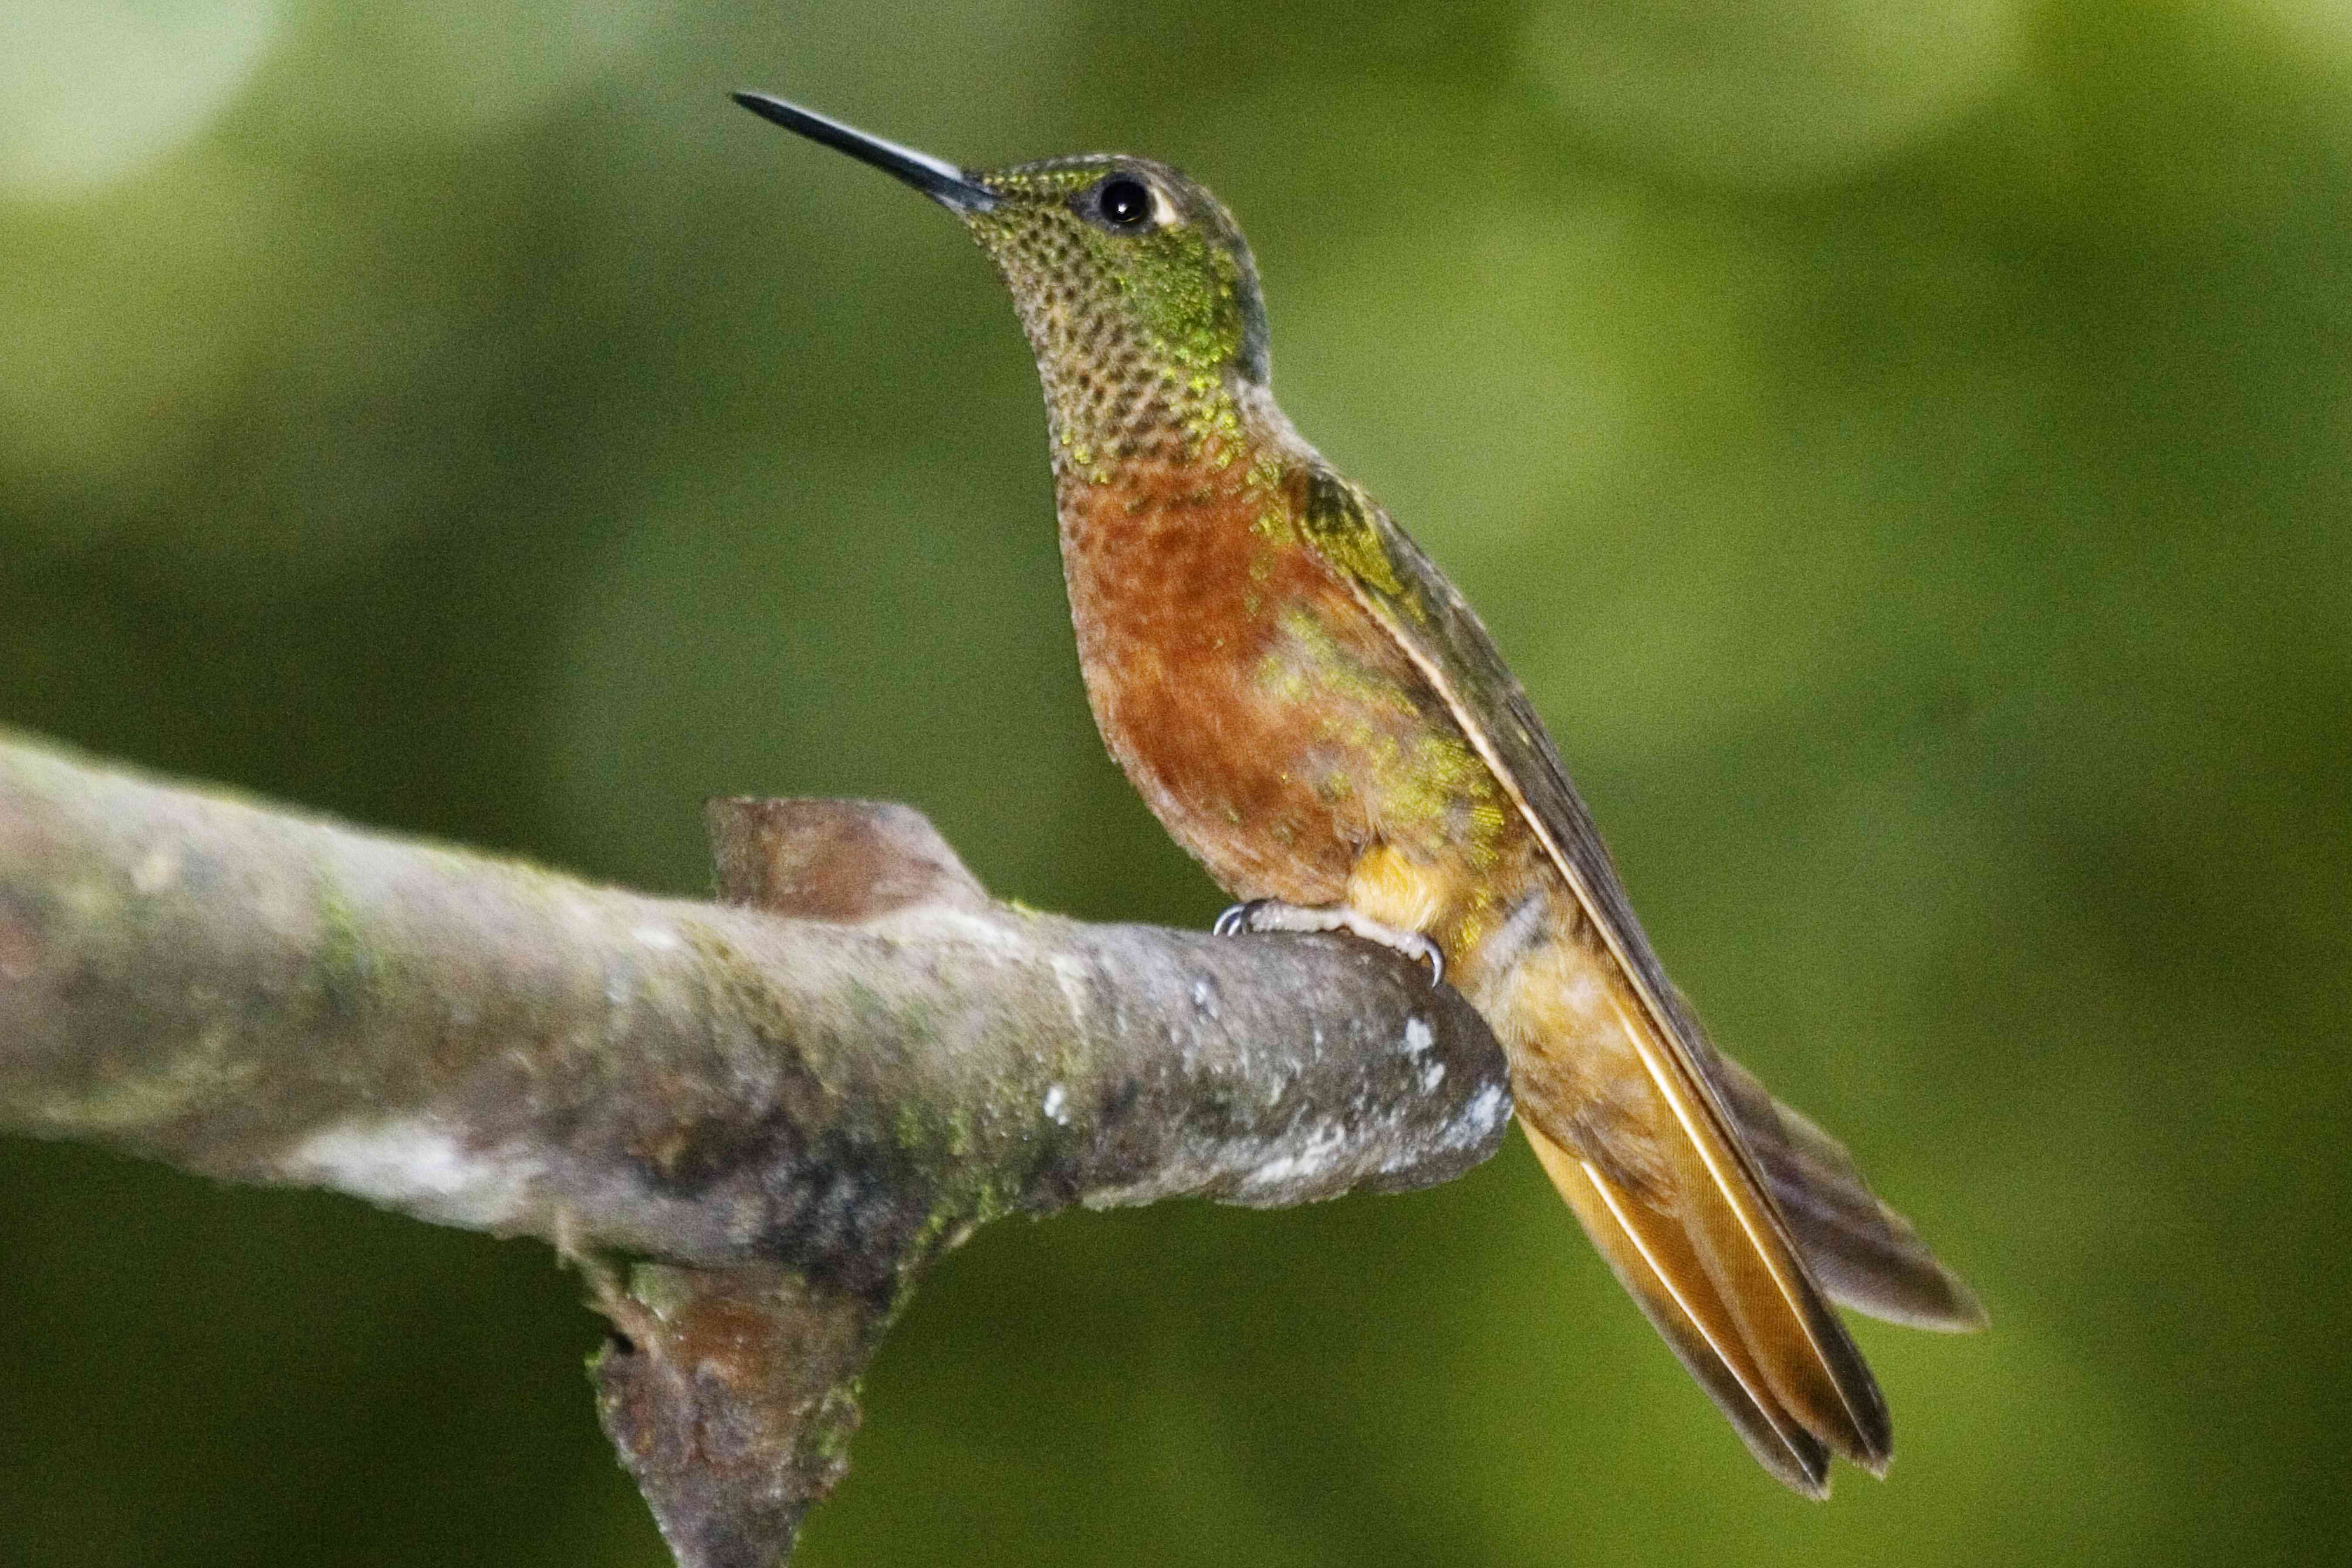 Chestnut-breasted coronet perched on a branch